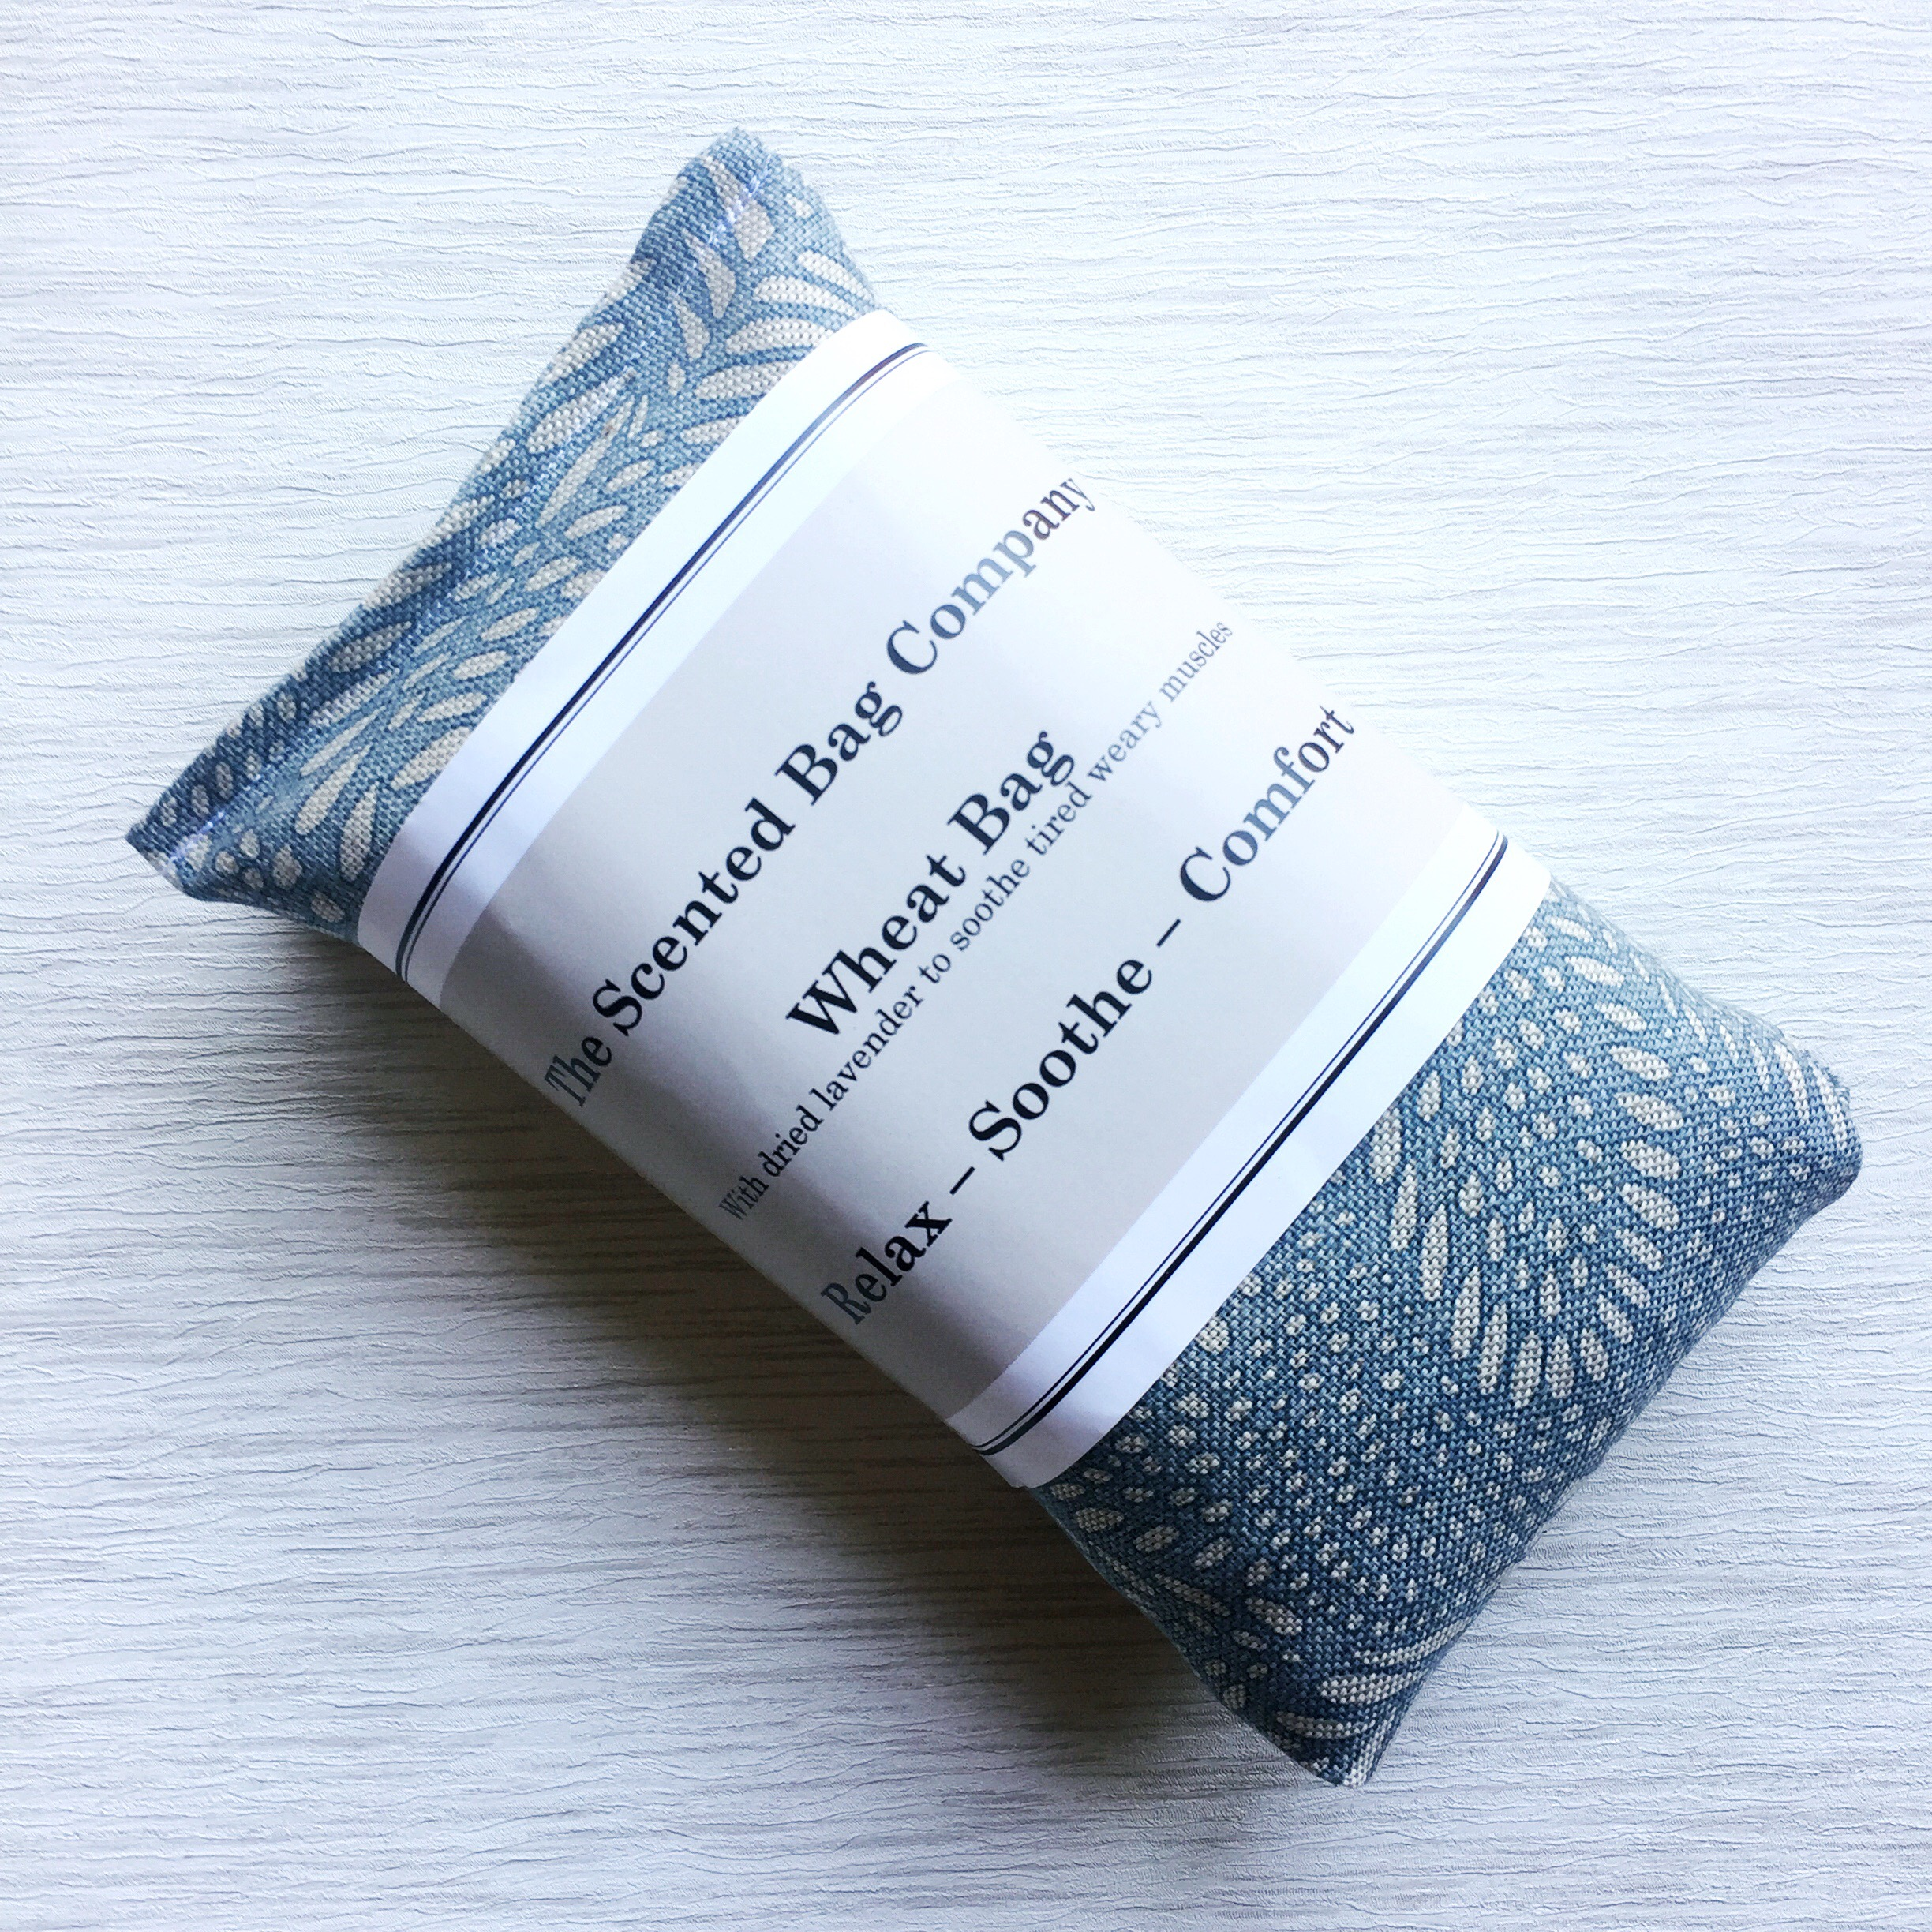 The Scented Bag Company (As Part of my #ShopSmall Blog Series)